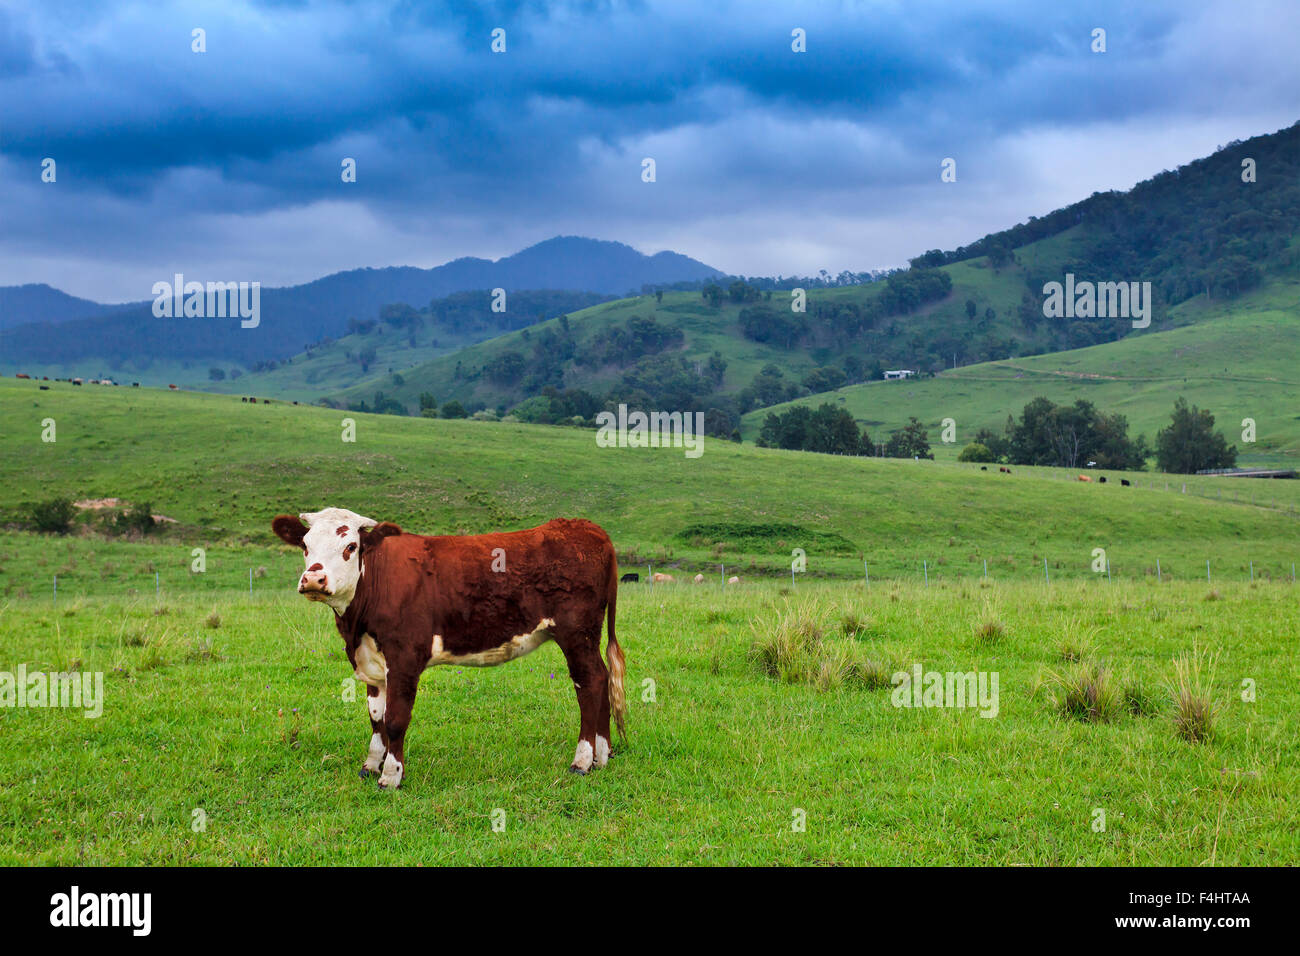 single brown angus steer bull on a green grazing pasture in rural reginal australian farm on a cloudy summer day - Stock Image